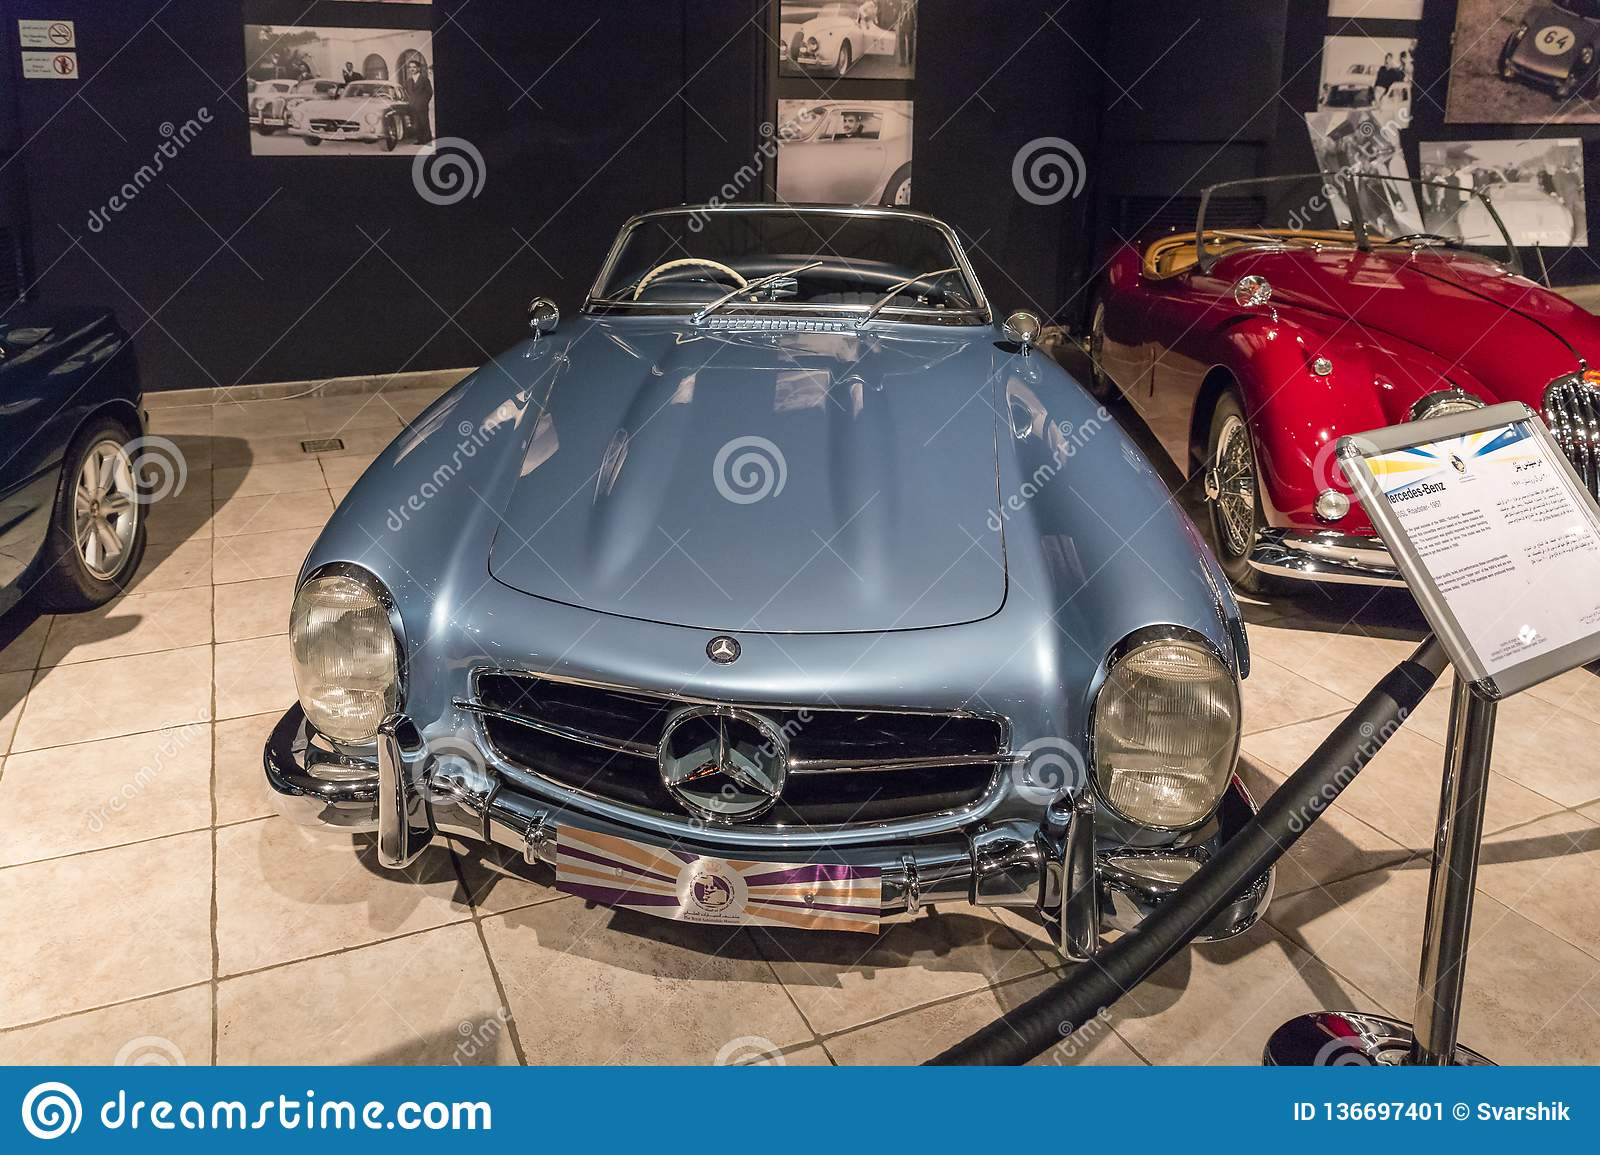 mercedes benz 300sl roadster 1957 at the exhibition in the king abdullah ii car museum in amman the capital of jordan editorial photo image of building cityscape 136697401 https www dreamstime com mercedes benz sl roadster exhibition king abdullah ii car museum amman capital jordan amman jordan image136697401